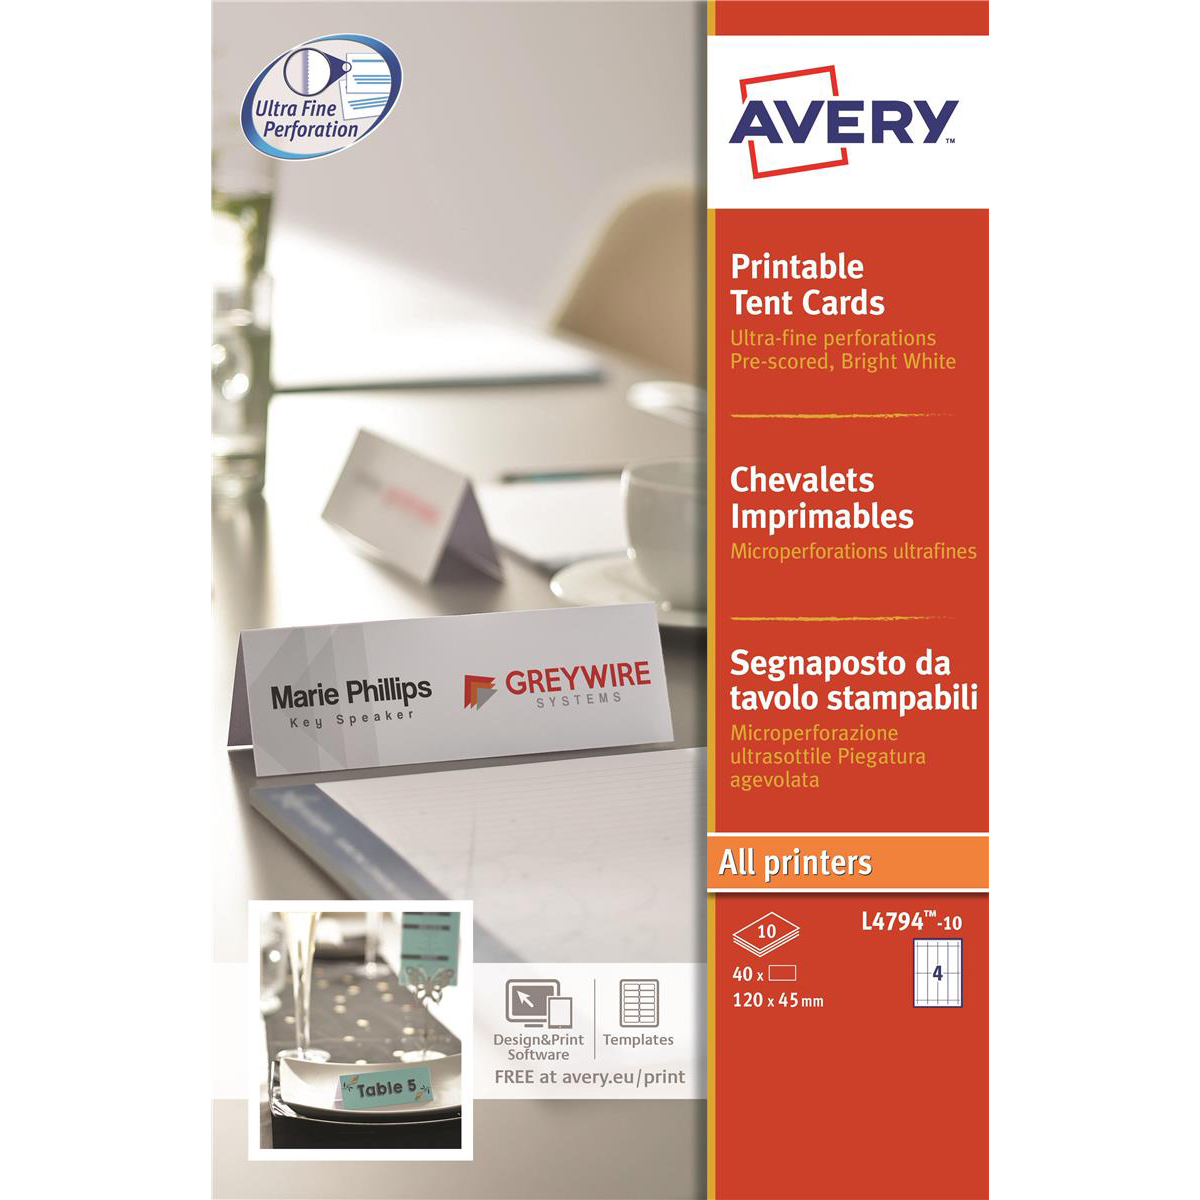 avery printable business tent card 4 per sheet 120x45mm 190gsm white